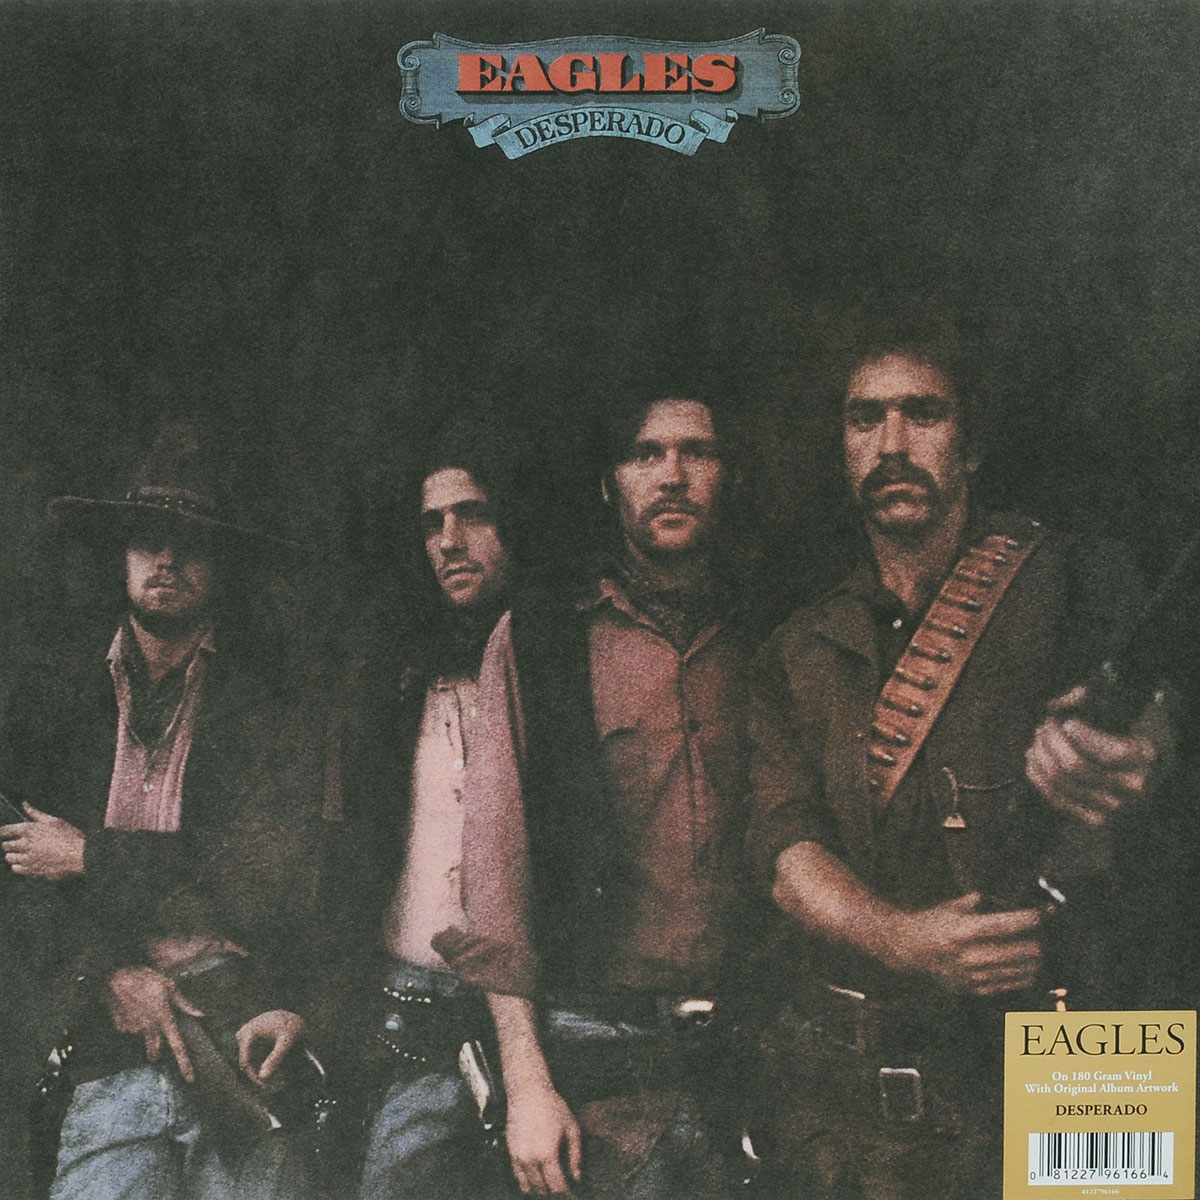 The Eagles Eagles. Desperado (LP) виниловая пластинка eagles the long run 1 lp